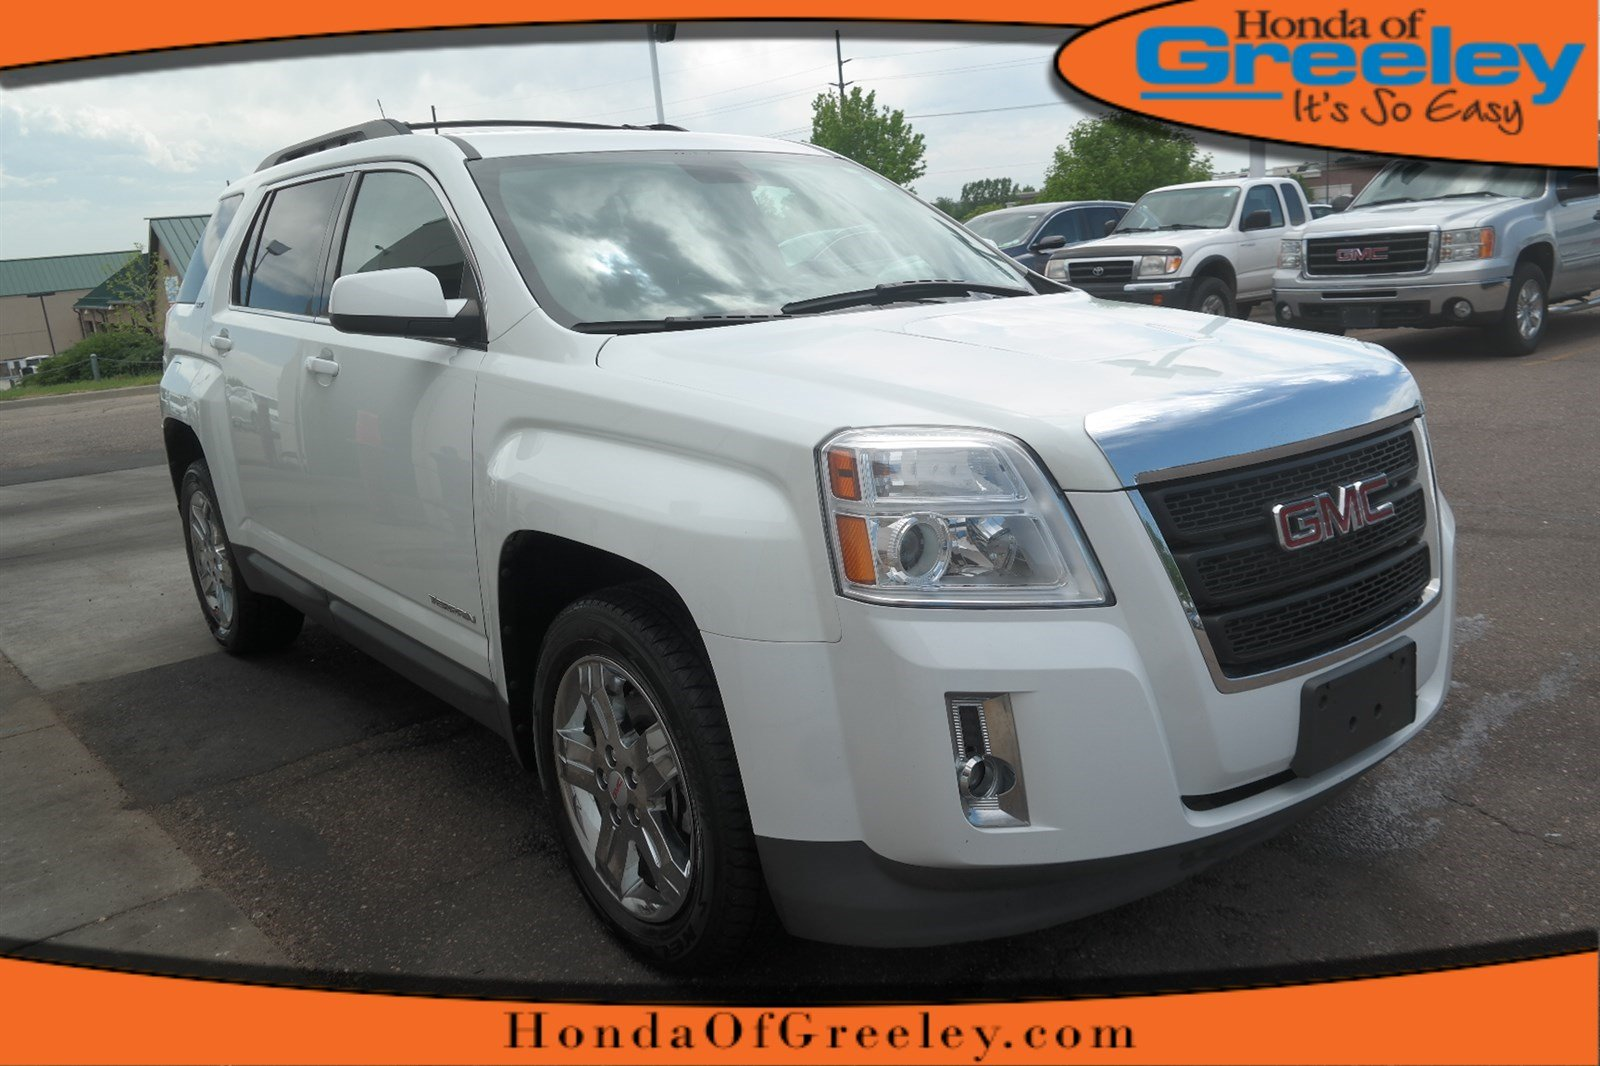 Photo Pre-Owned 2012 GMC Terrain SLT-1 All Wheel Drive Sport Utility For Sale in Greeley, Loveland, Windsor, Fort Collins, Longmont, Colorado